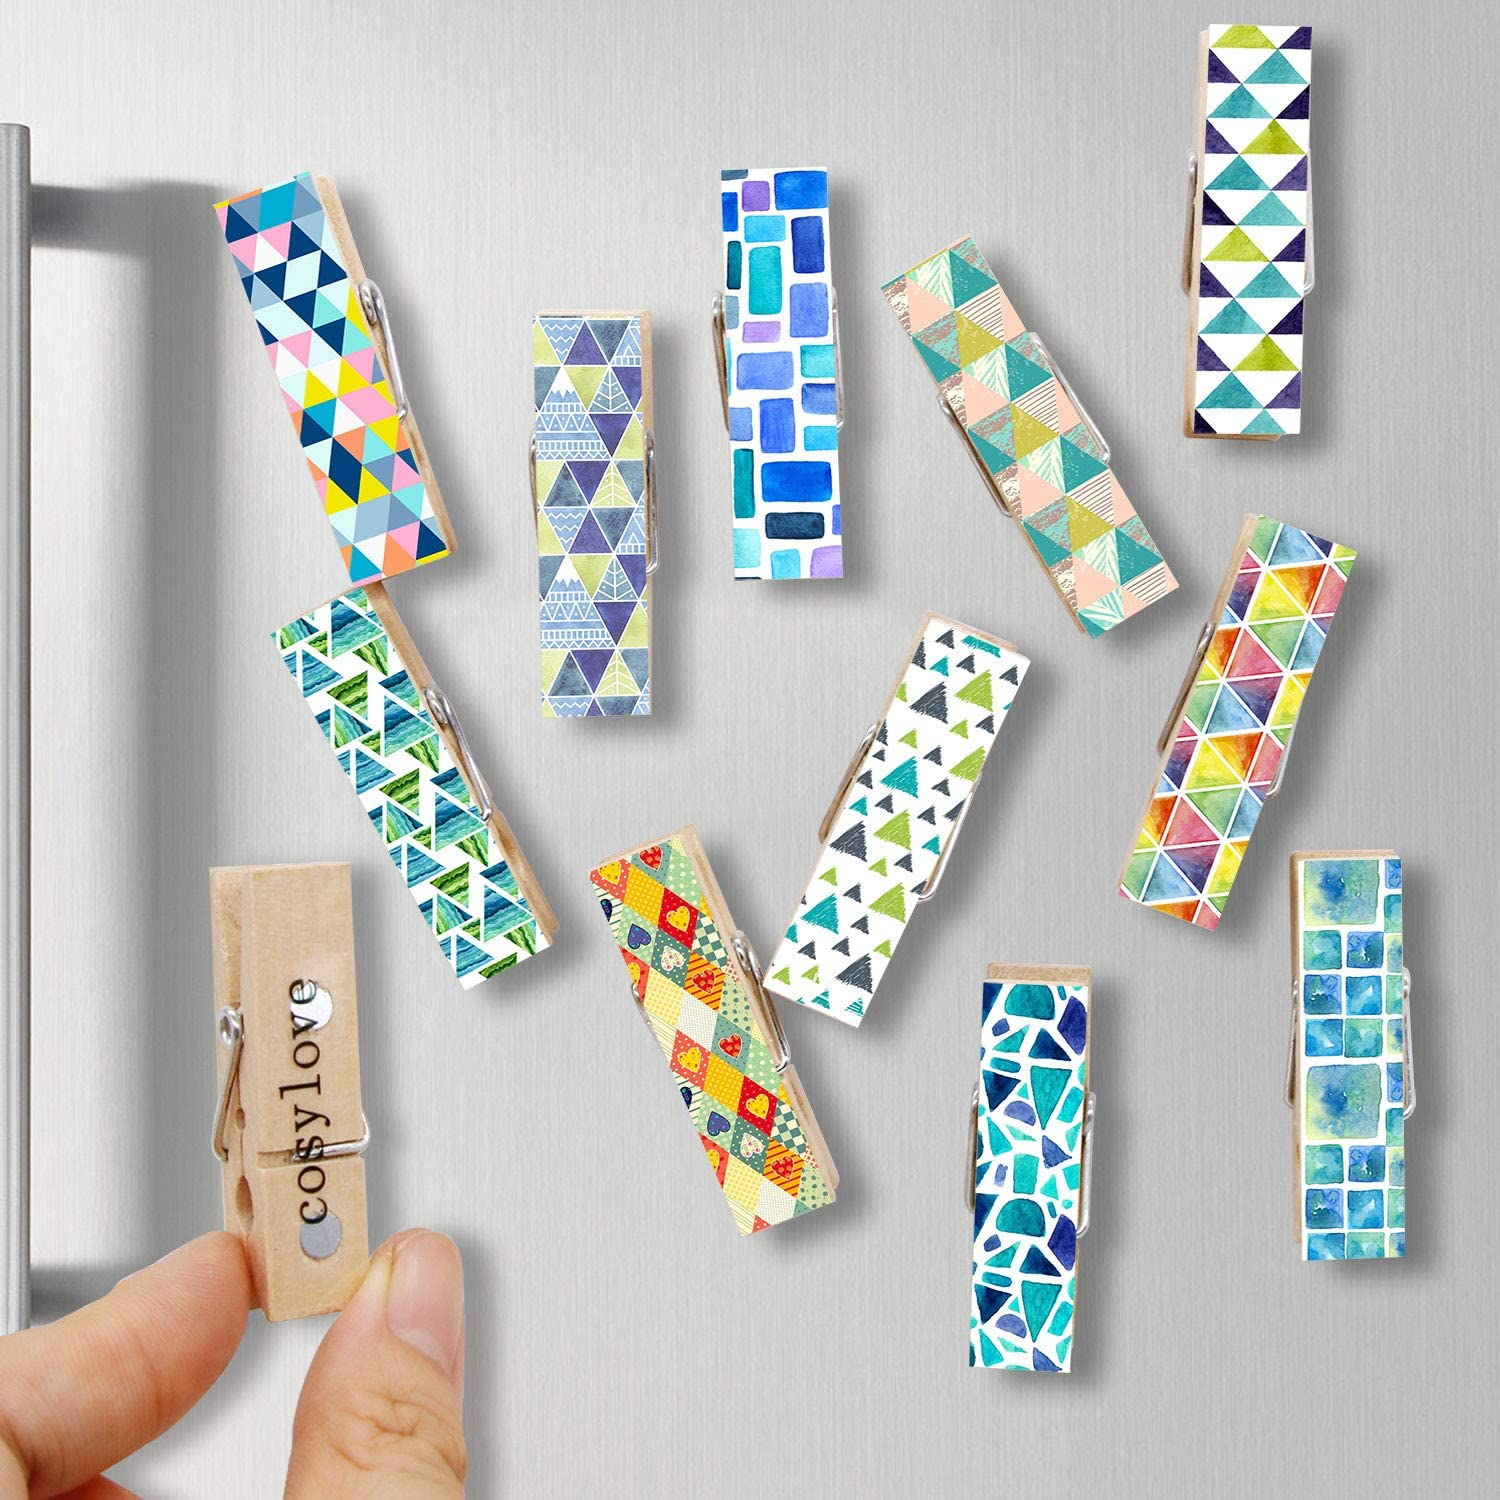 12pcs Refrigerator Magnet Clips by Cosylove-Decorative Magnetic Clips Made of Wood with Beautiful Patterns–Super Fridge Magnets for House Office Use - Display Photos,Memos, Lists, Calendars (Mosaic)